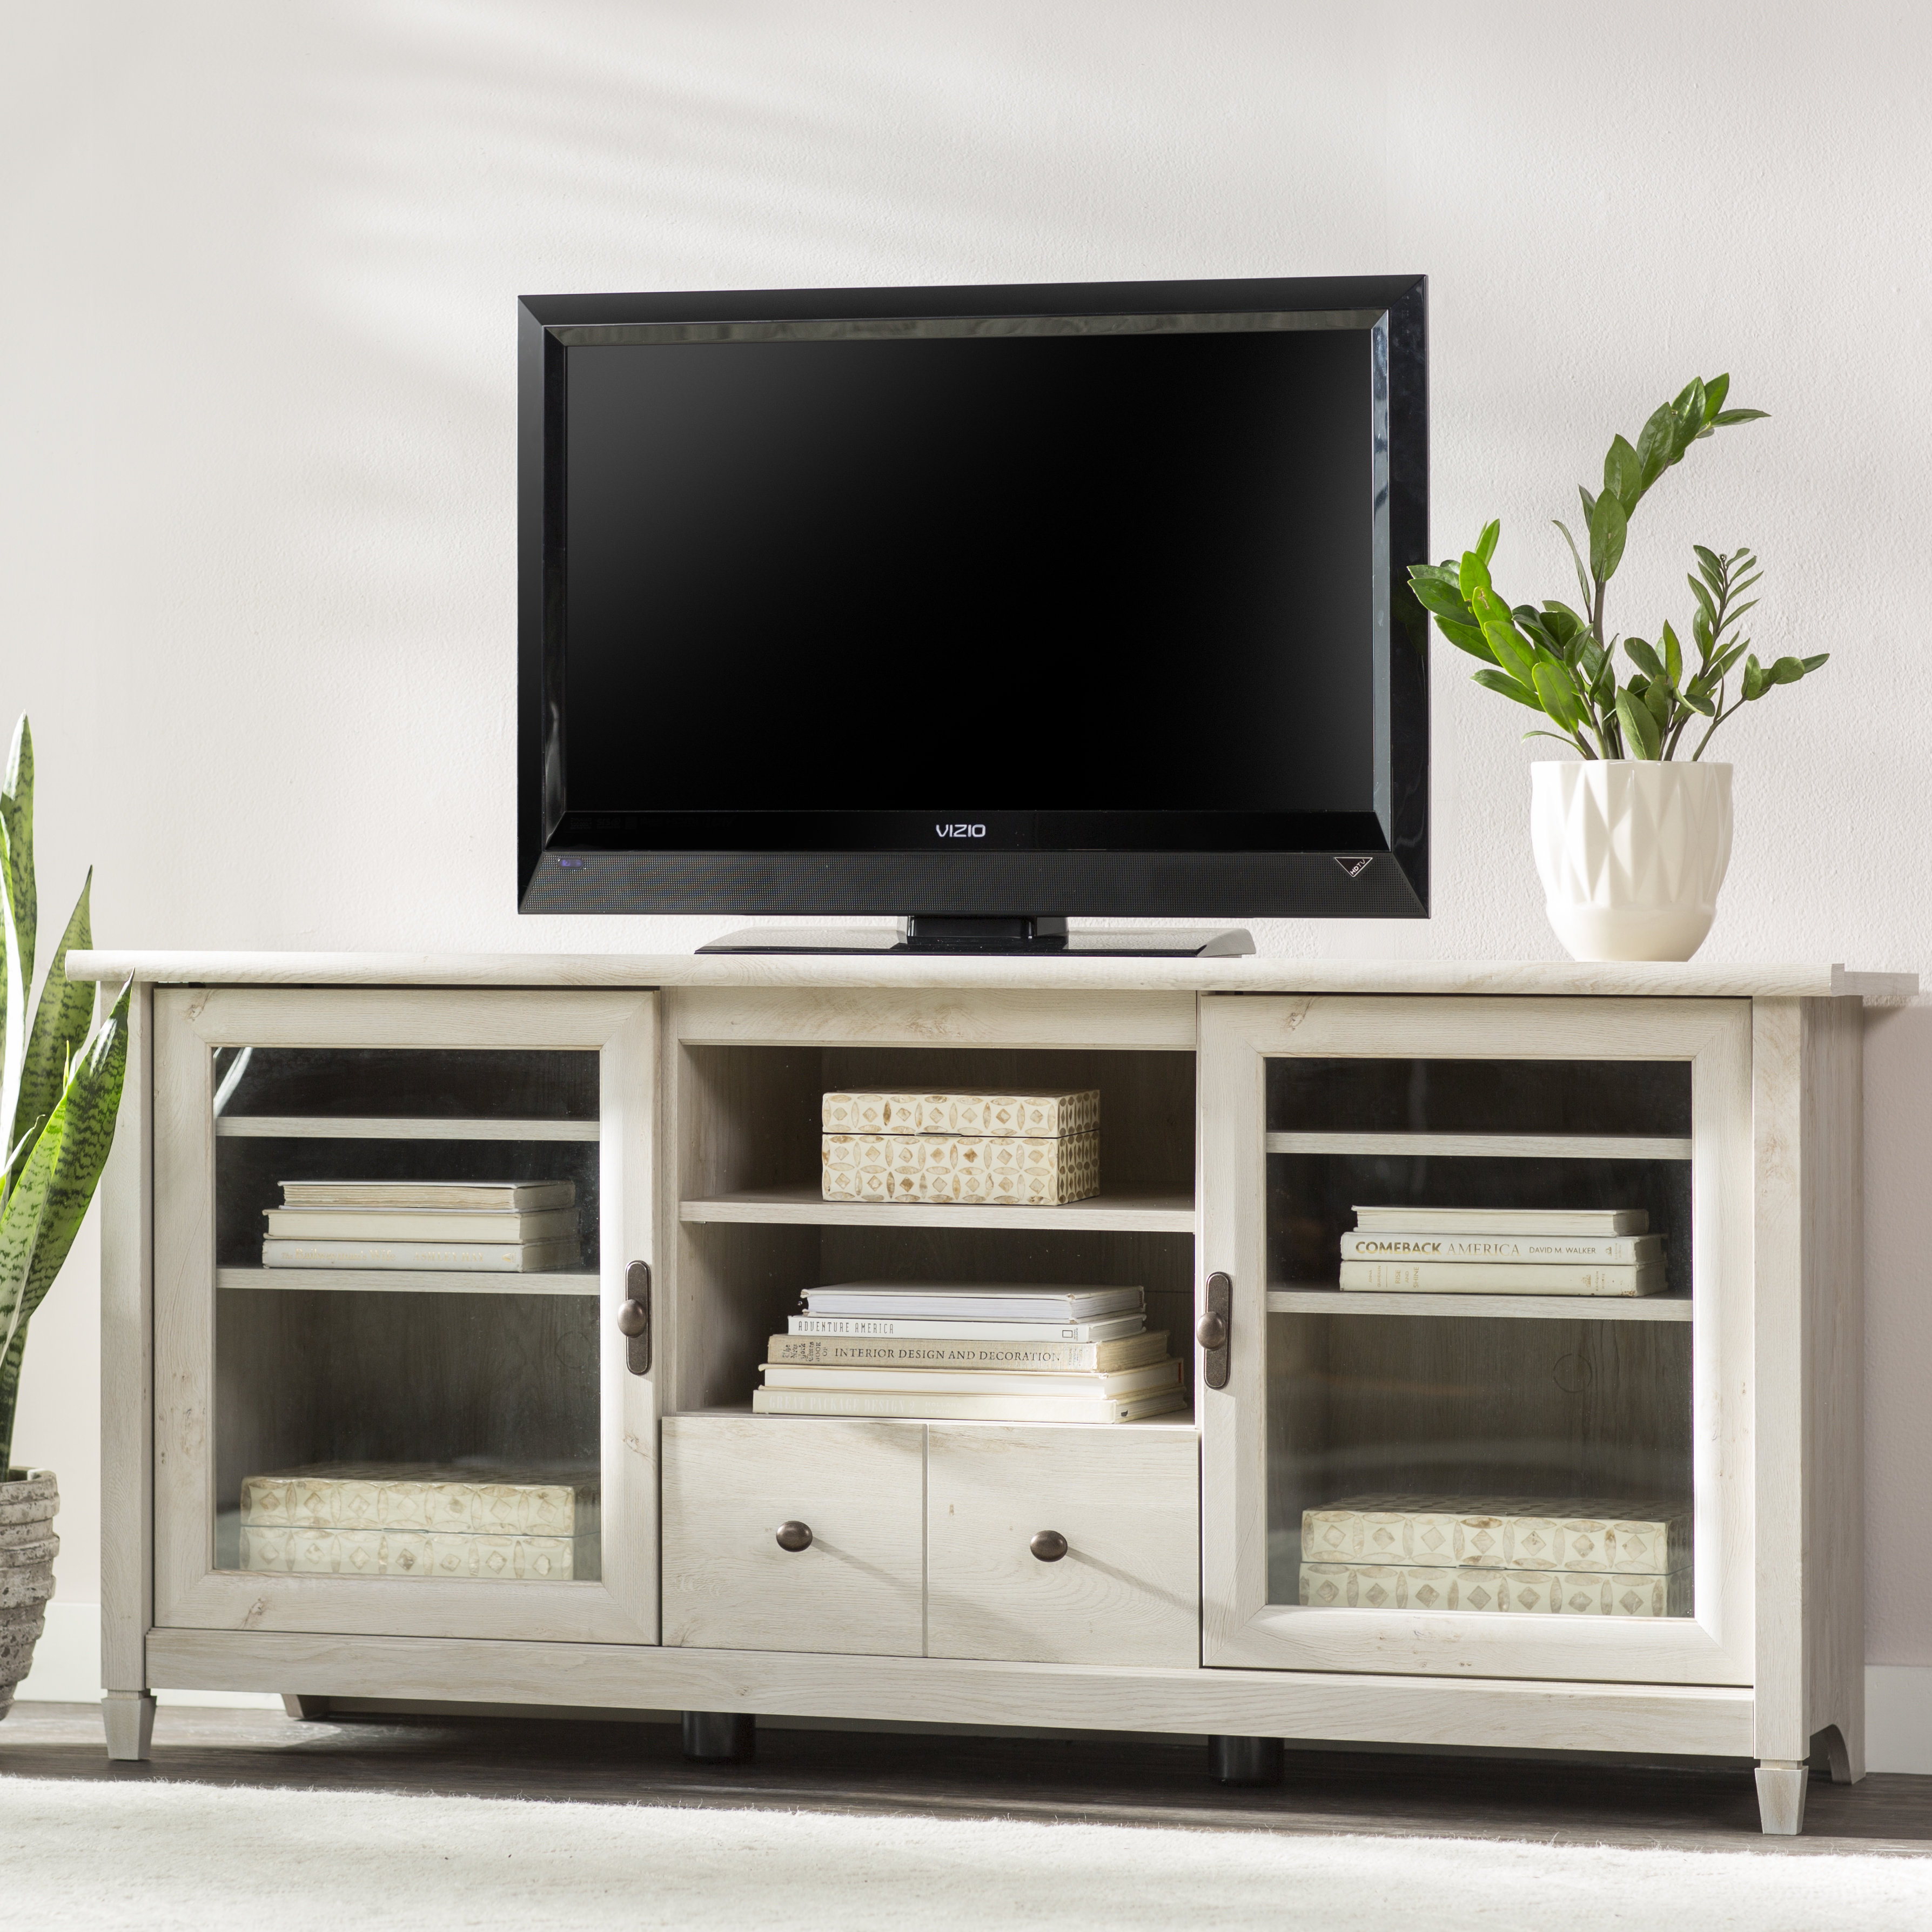 "Inspiration about Vintage Tv Stand | Wayfair Inside Best And Newest Colefax Vintage Tv Stands For Tvs Up To 78"" (#13 of 20)"